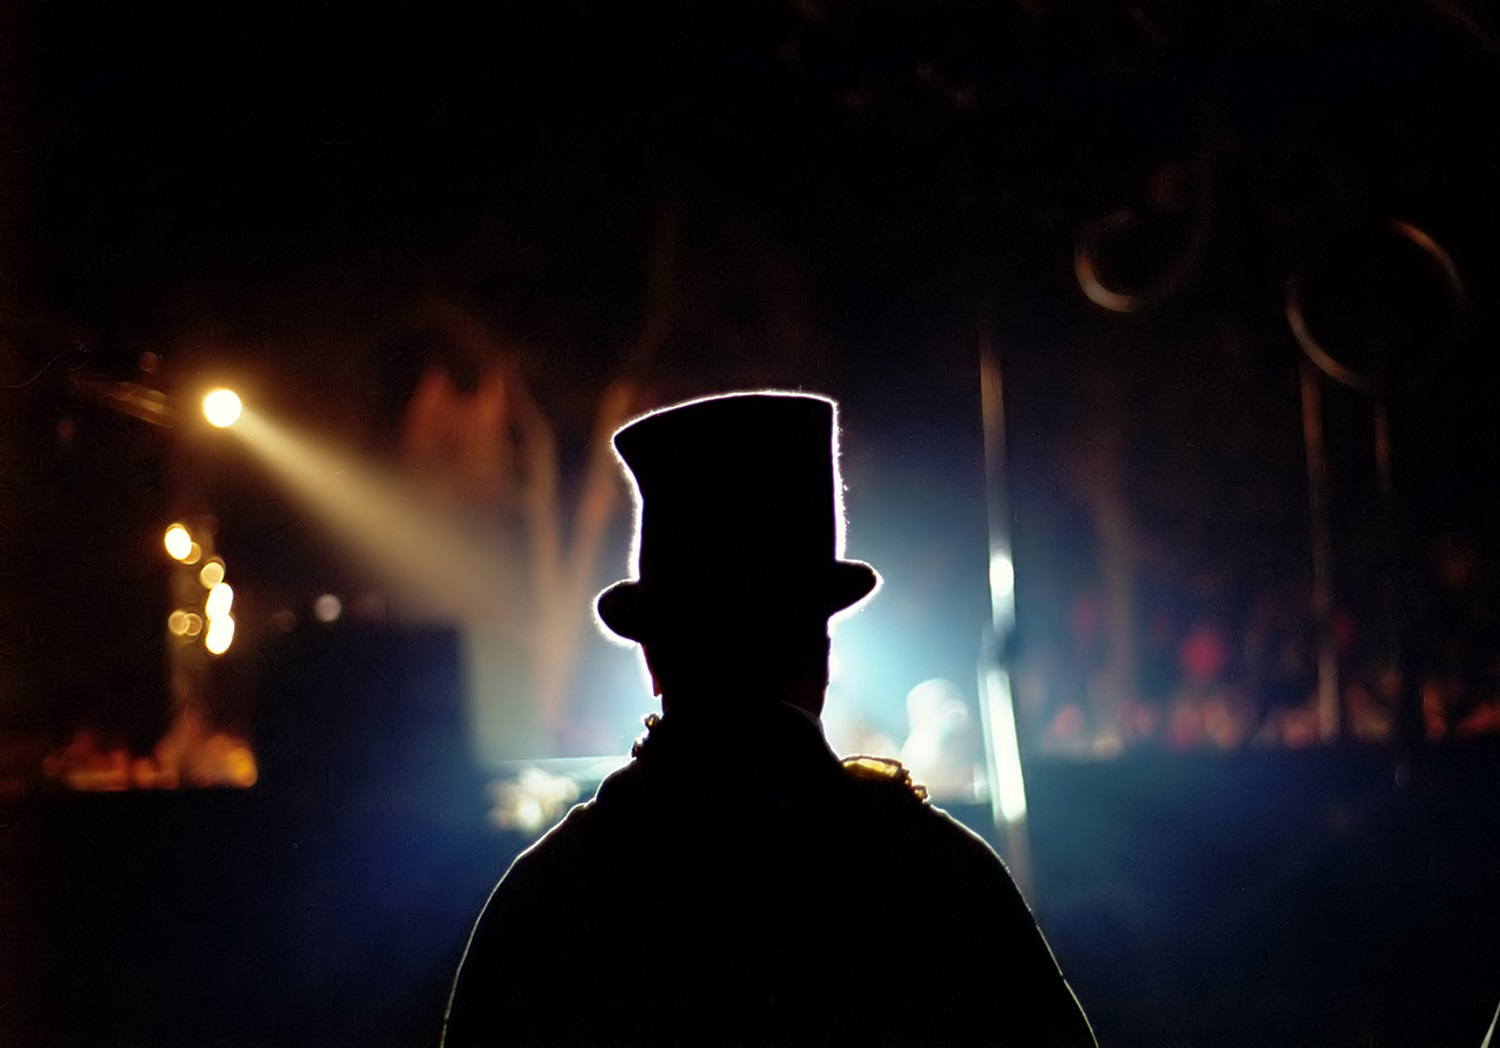 a man with a top hat on in front of a crowd